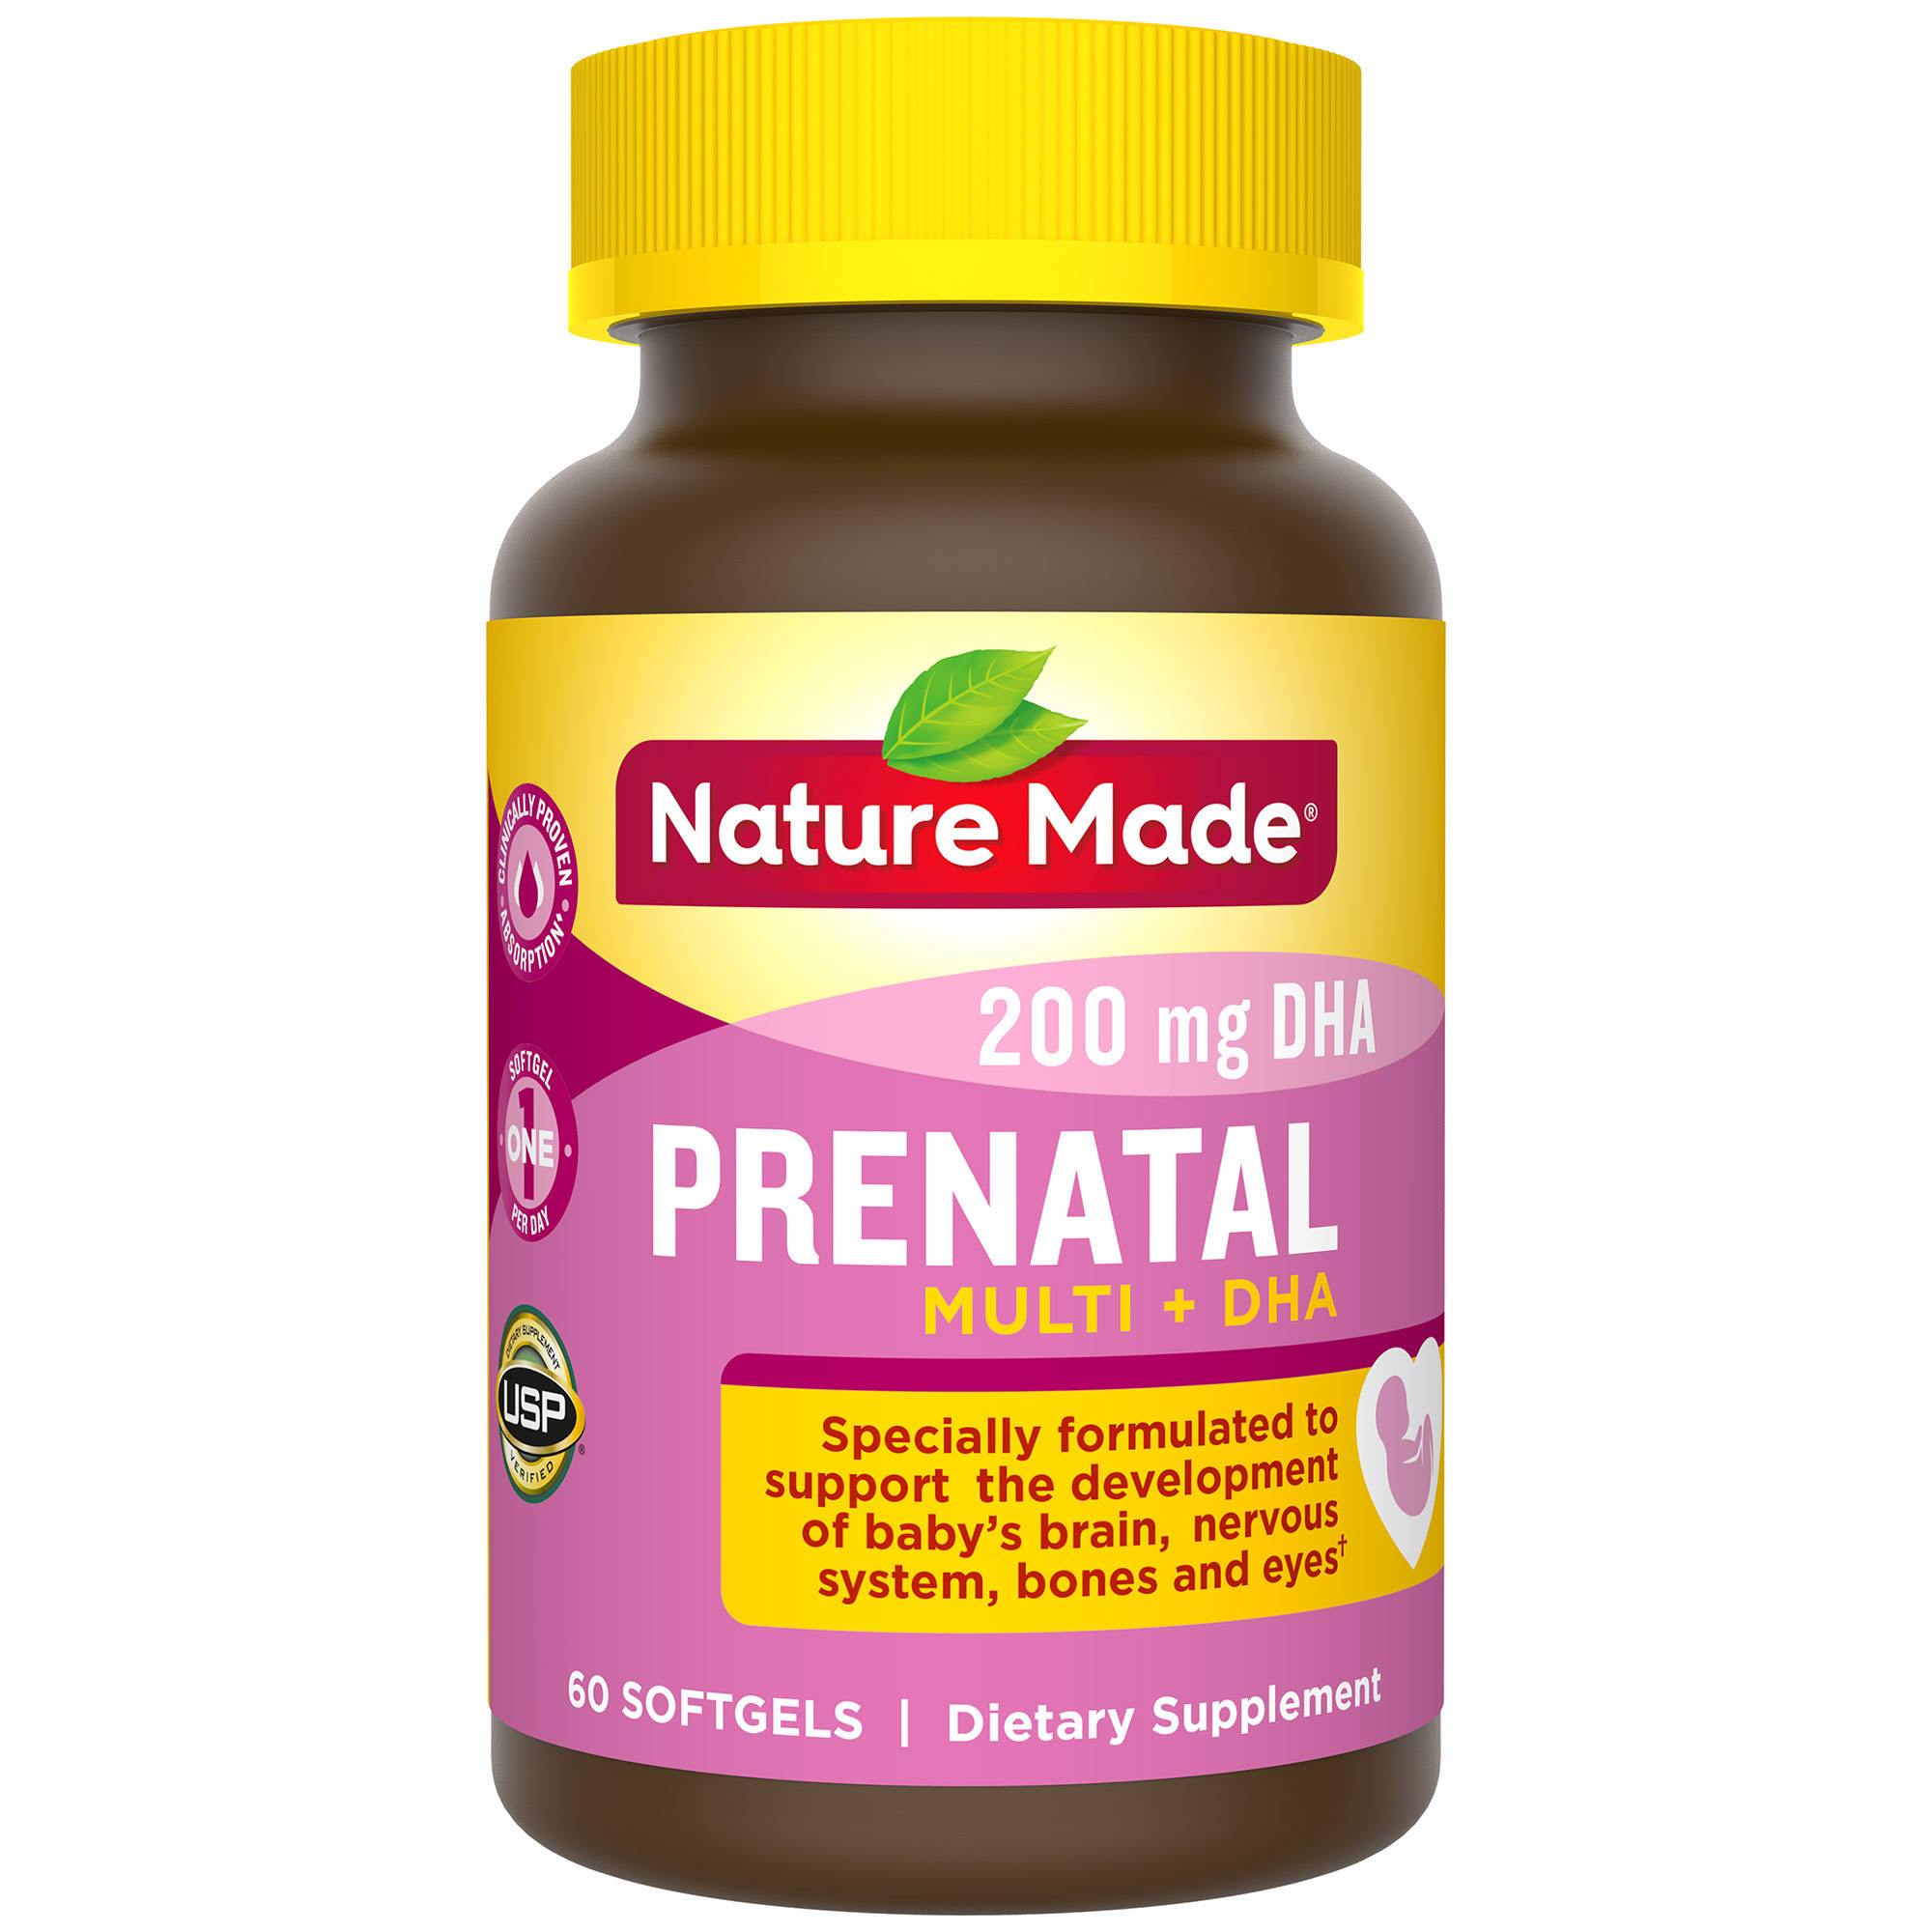 Nature Made Prenatal Plus Dha Dietary Supplement - 60 Liquid Softgels, 200mg